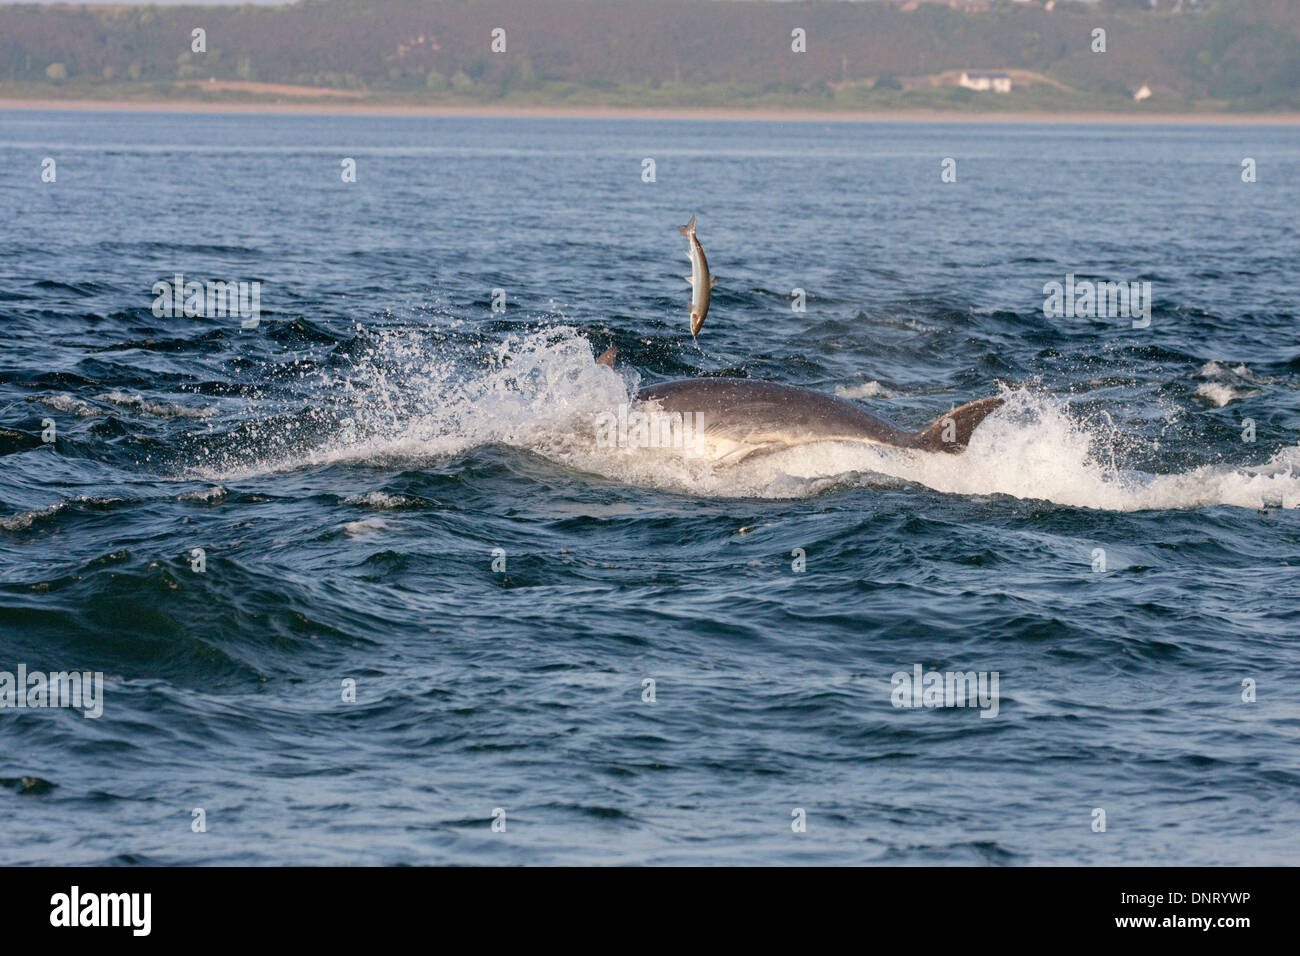 Bottlenose dolphin chasing a fish/salmon (Tursiops truncatus), Chanonry Point, Moray Firth, Scotland, UK - Stock Image